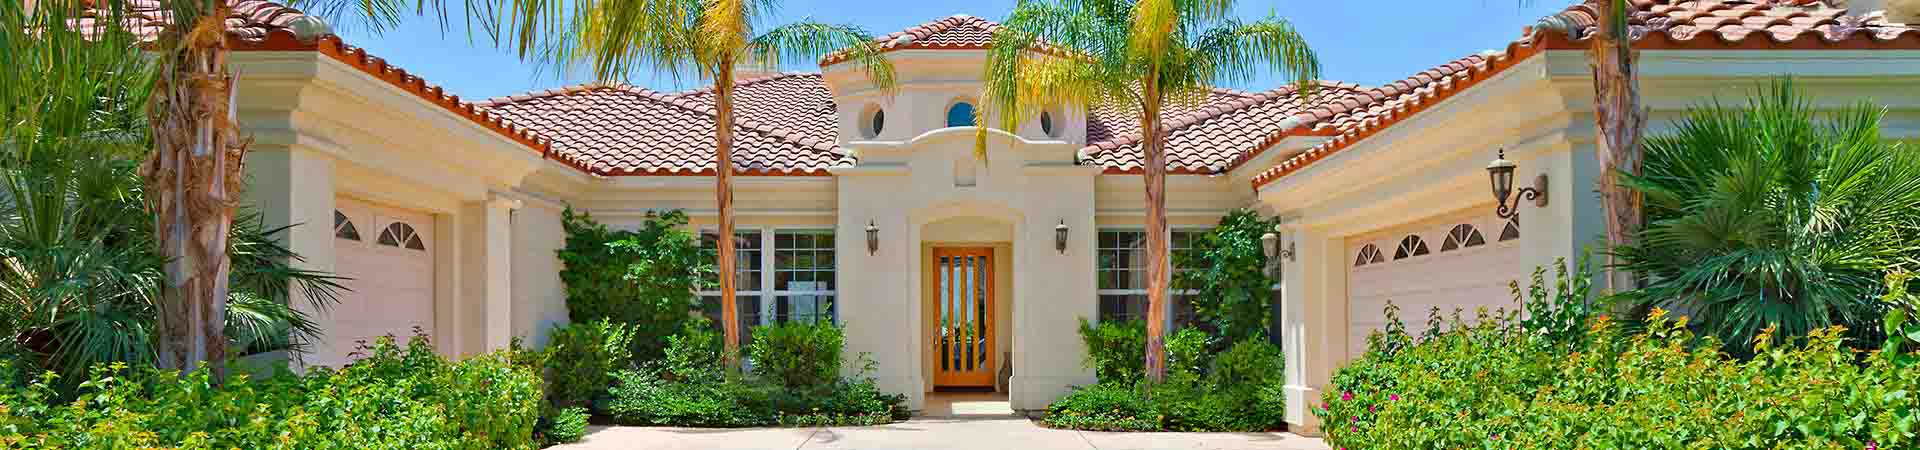 Peachy Homeowners Insurance For Indio La Quinta Ca Palm Springs Download Free Architecture Designs Rallybritishbridgeorg